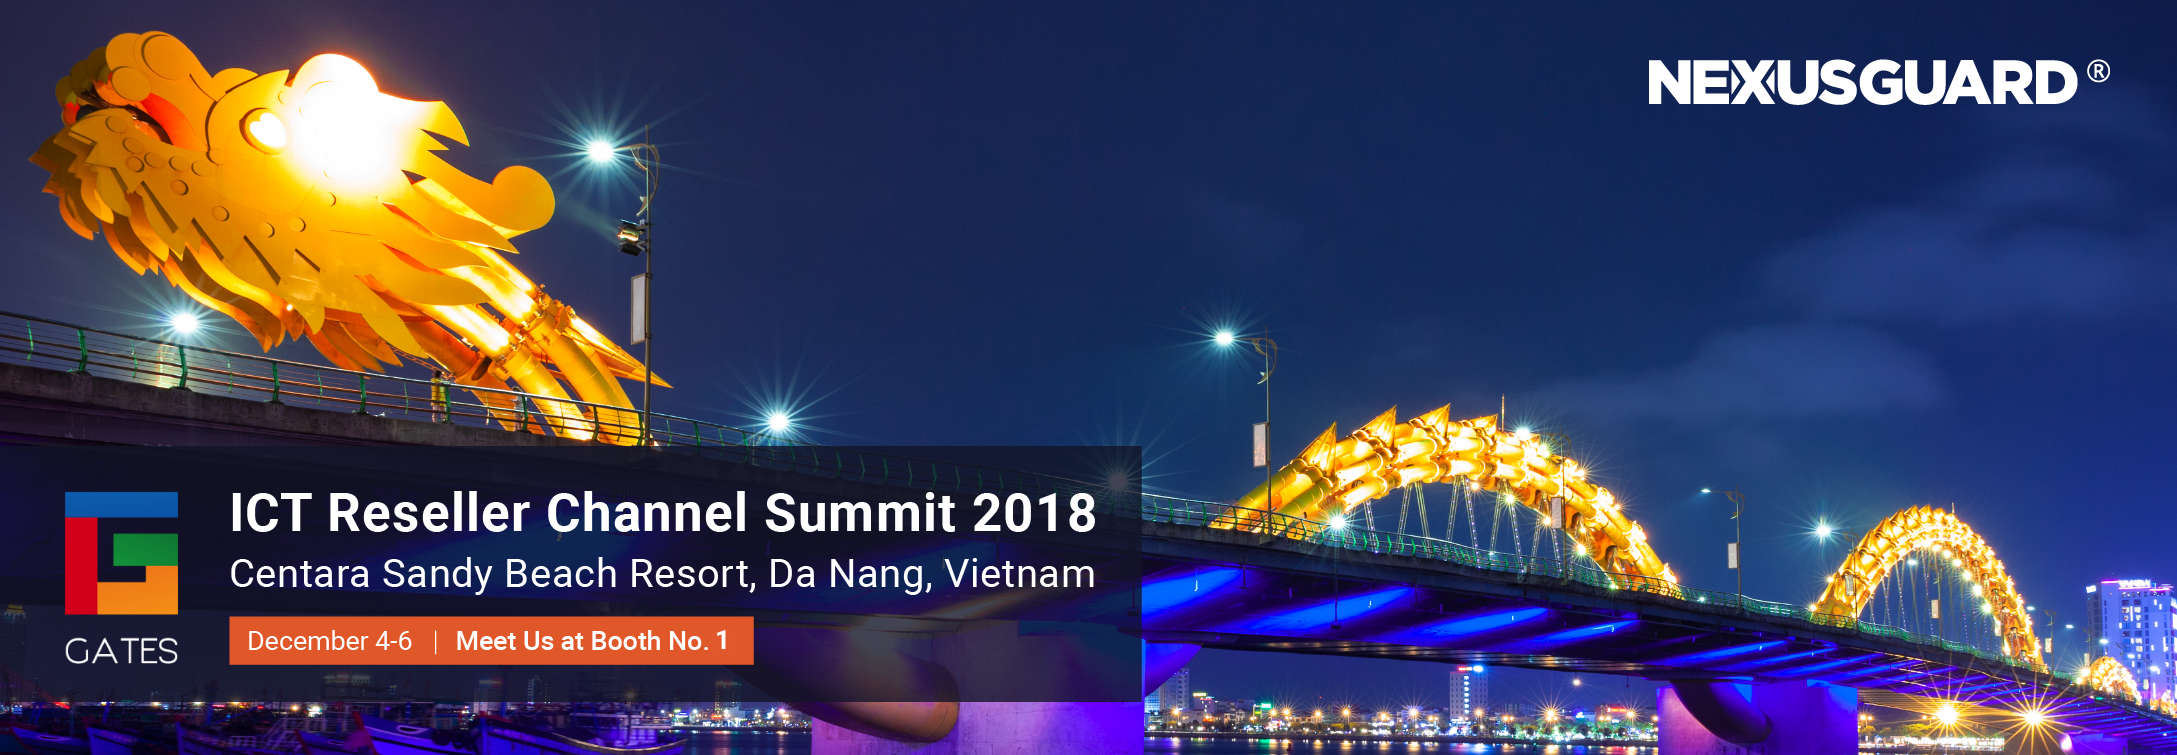 ICT Reseller Channel Summit 2018_Homepage